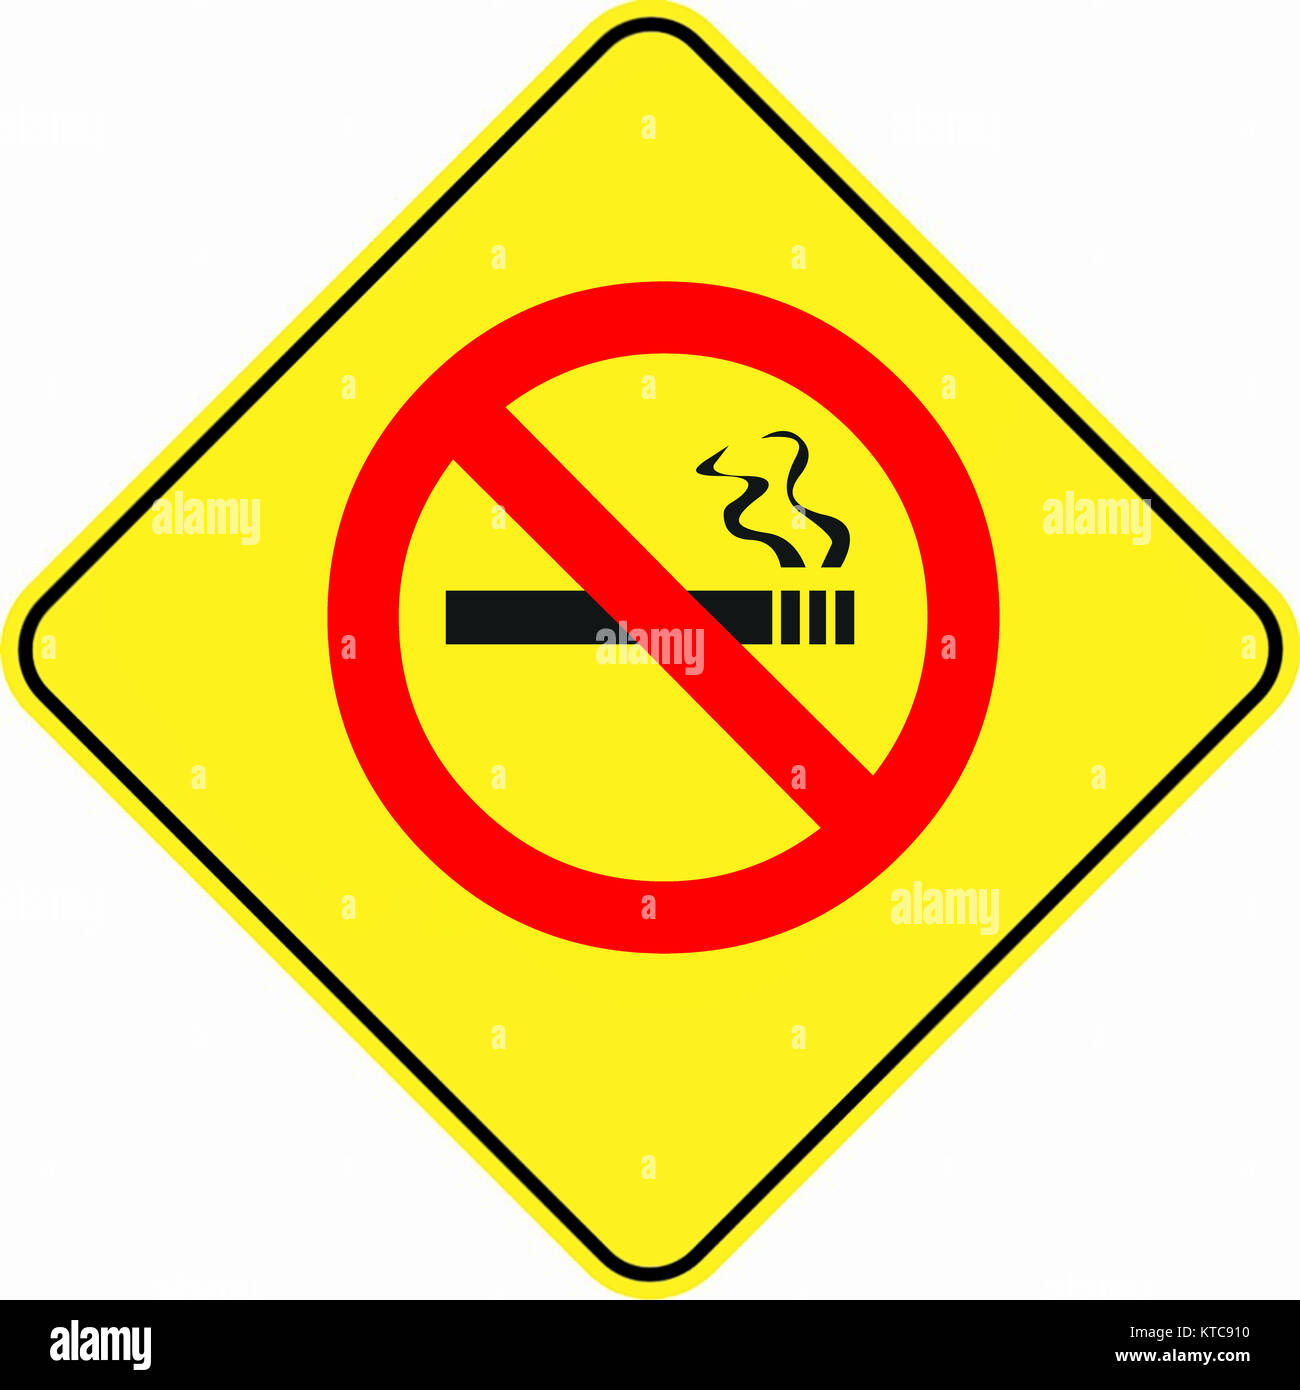 Attention alert no smoking symbol sign stock photo 169915564 alamy attention alert no smoking symbol sign buycottarizona Images